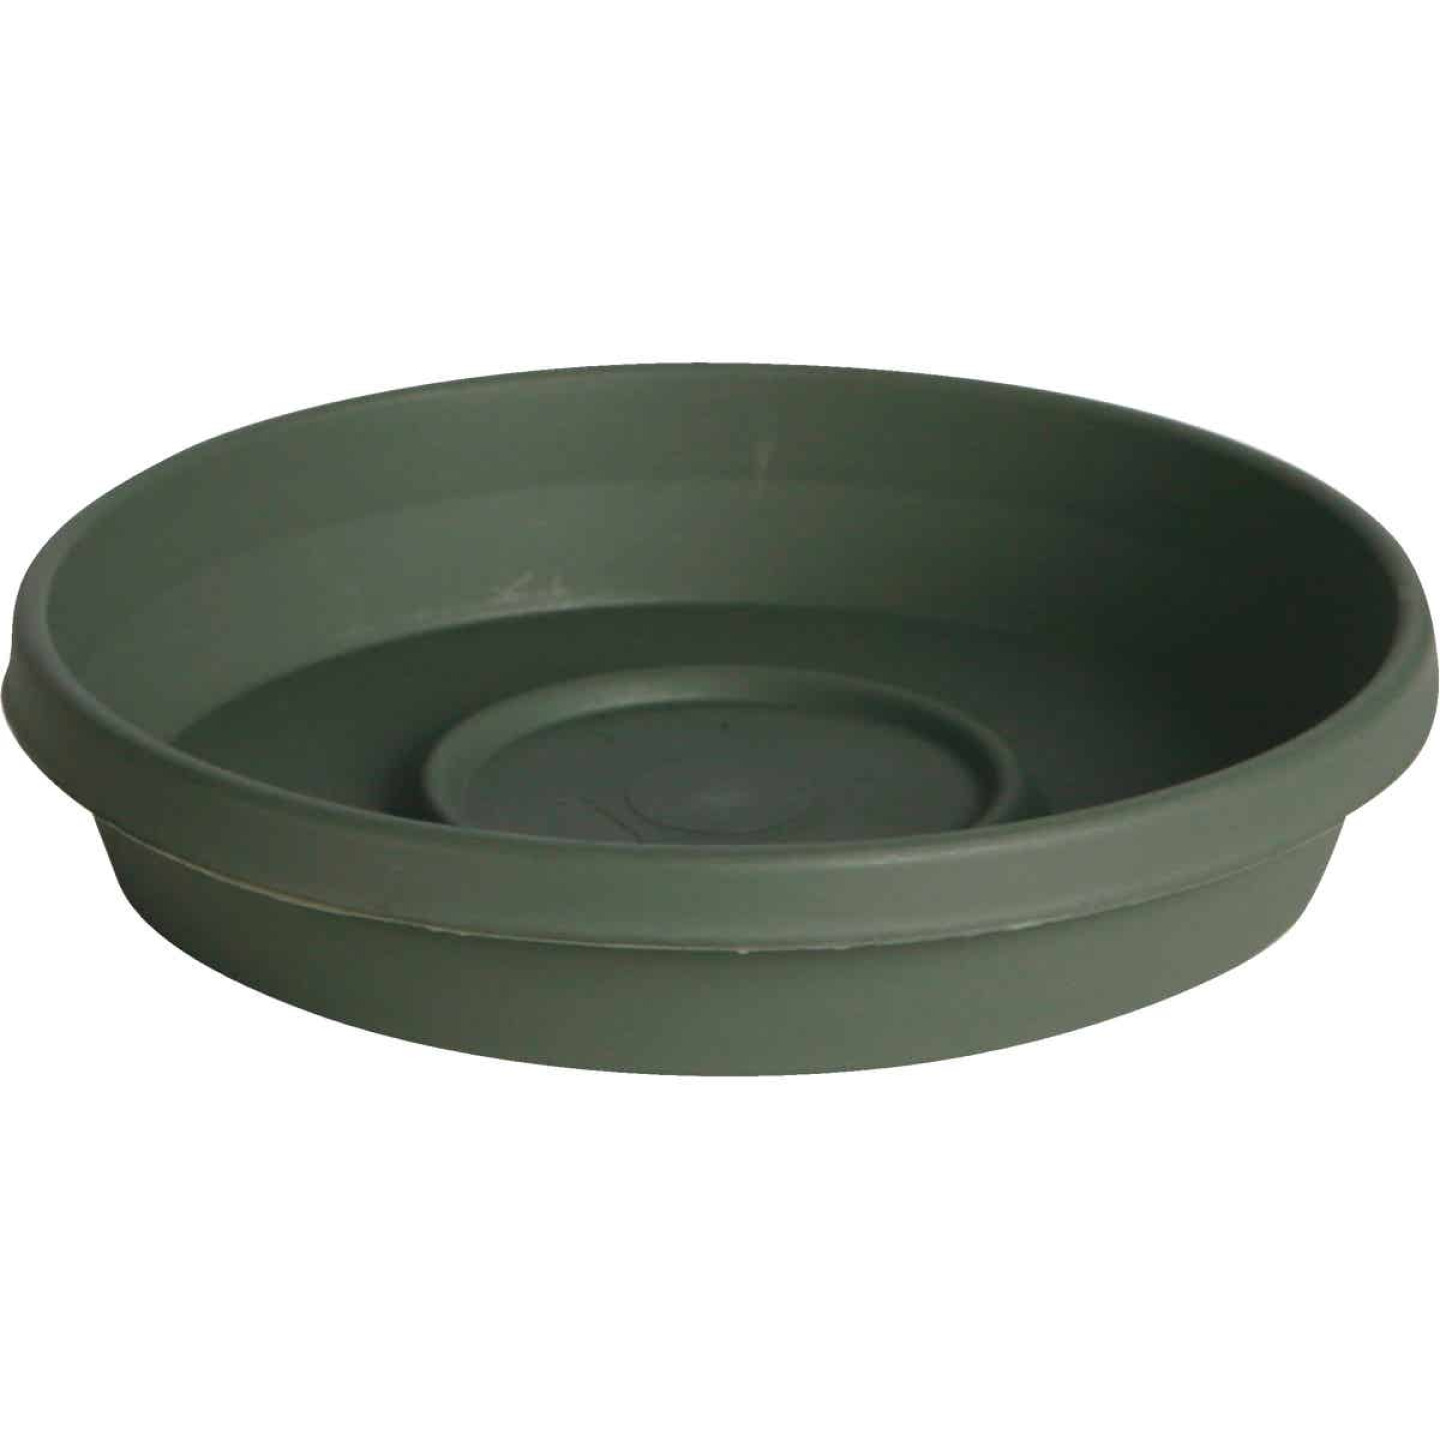 Bloem Terra Living Green 12 In. Plastic Flower Pot Saucer Image 1